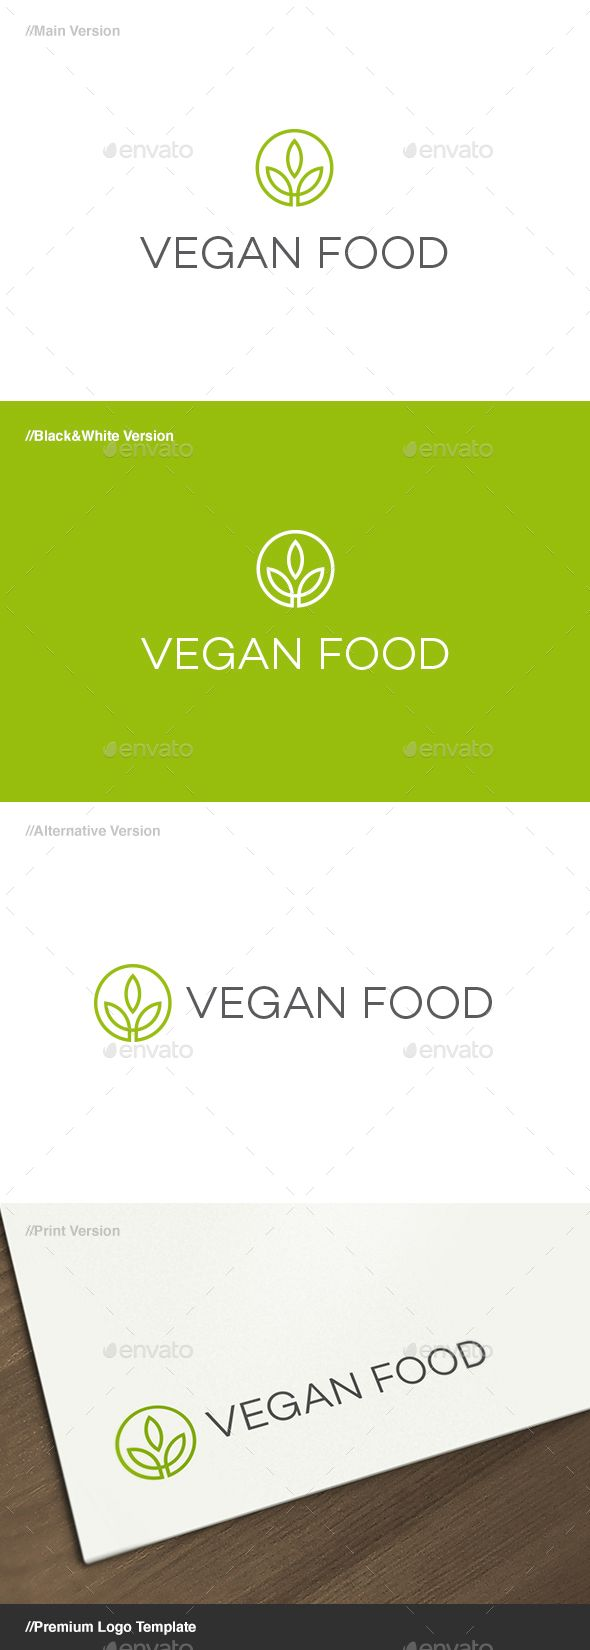 Vegan Food - Herbal Symbol Logo Template #design #logotype Download: http://graphicriver.net/item/vegan-food-herbal-symbol-logo/13083270?ref=ksioks